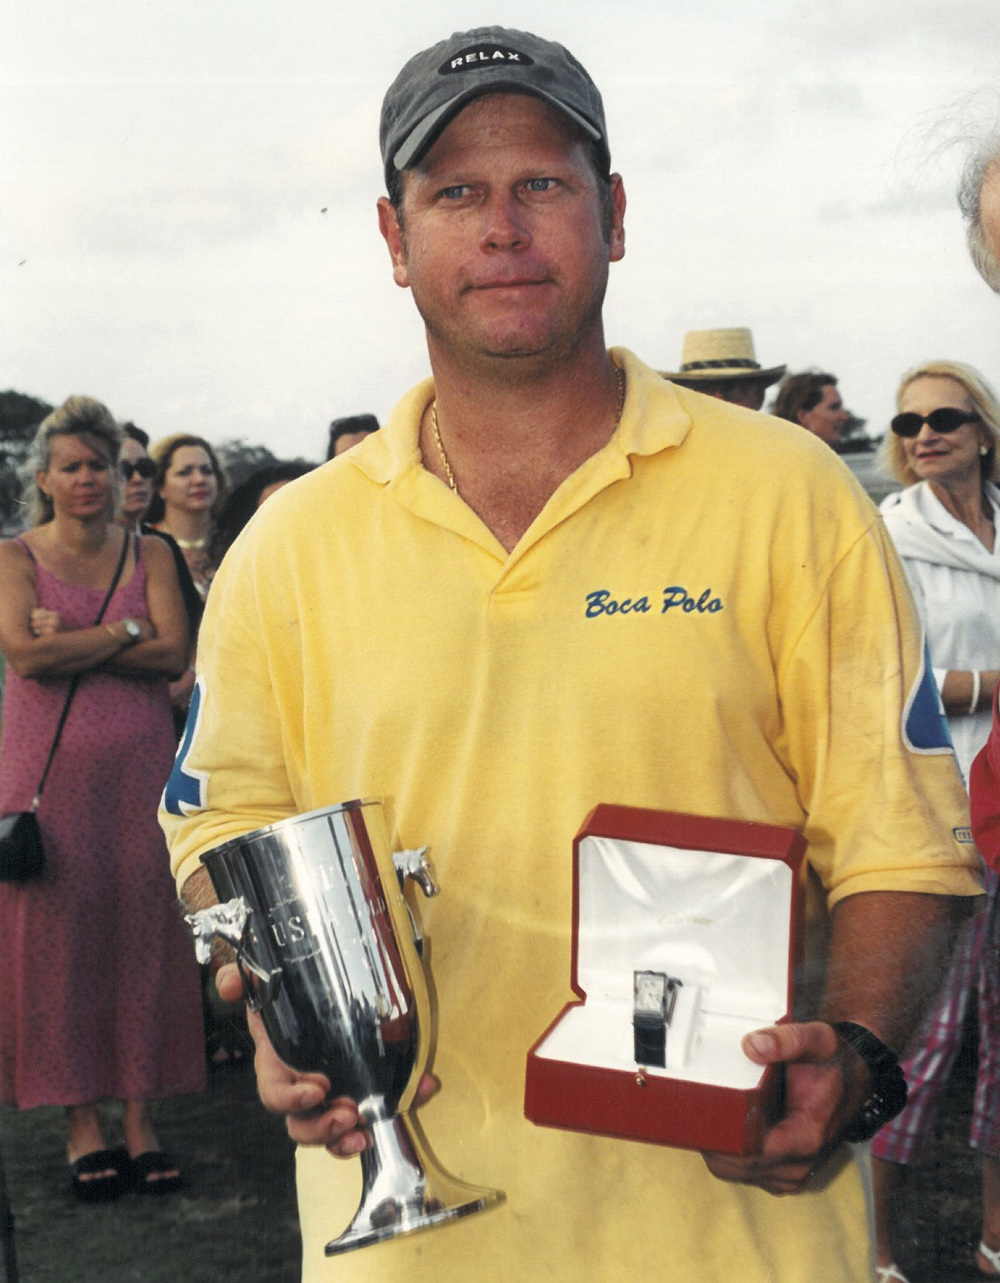 Joey receiving MVP award 2001 USPA Gold Cup